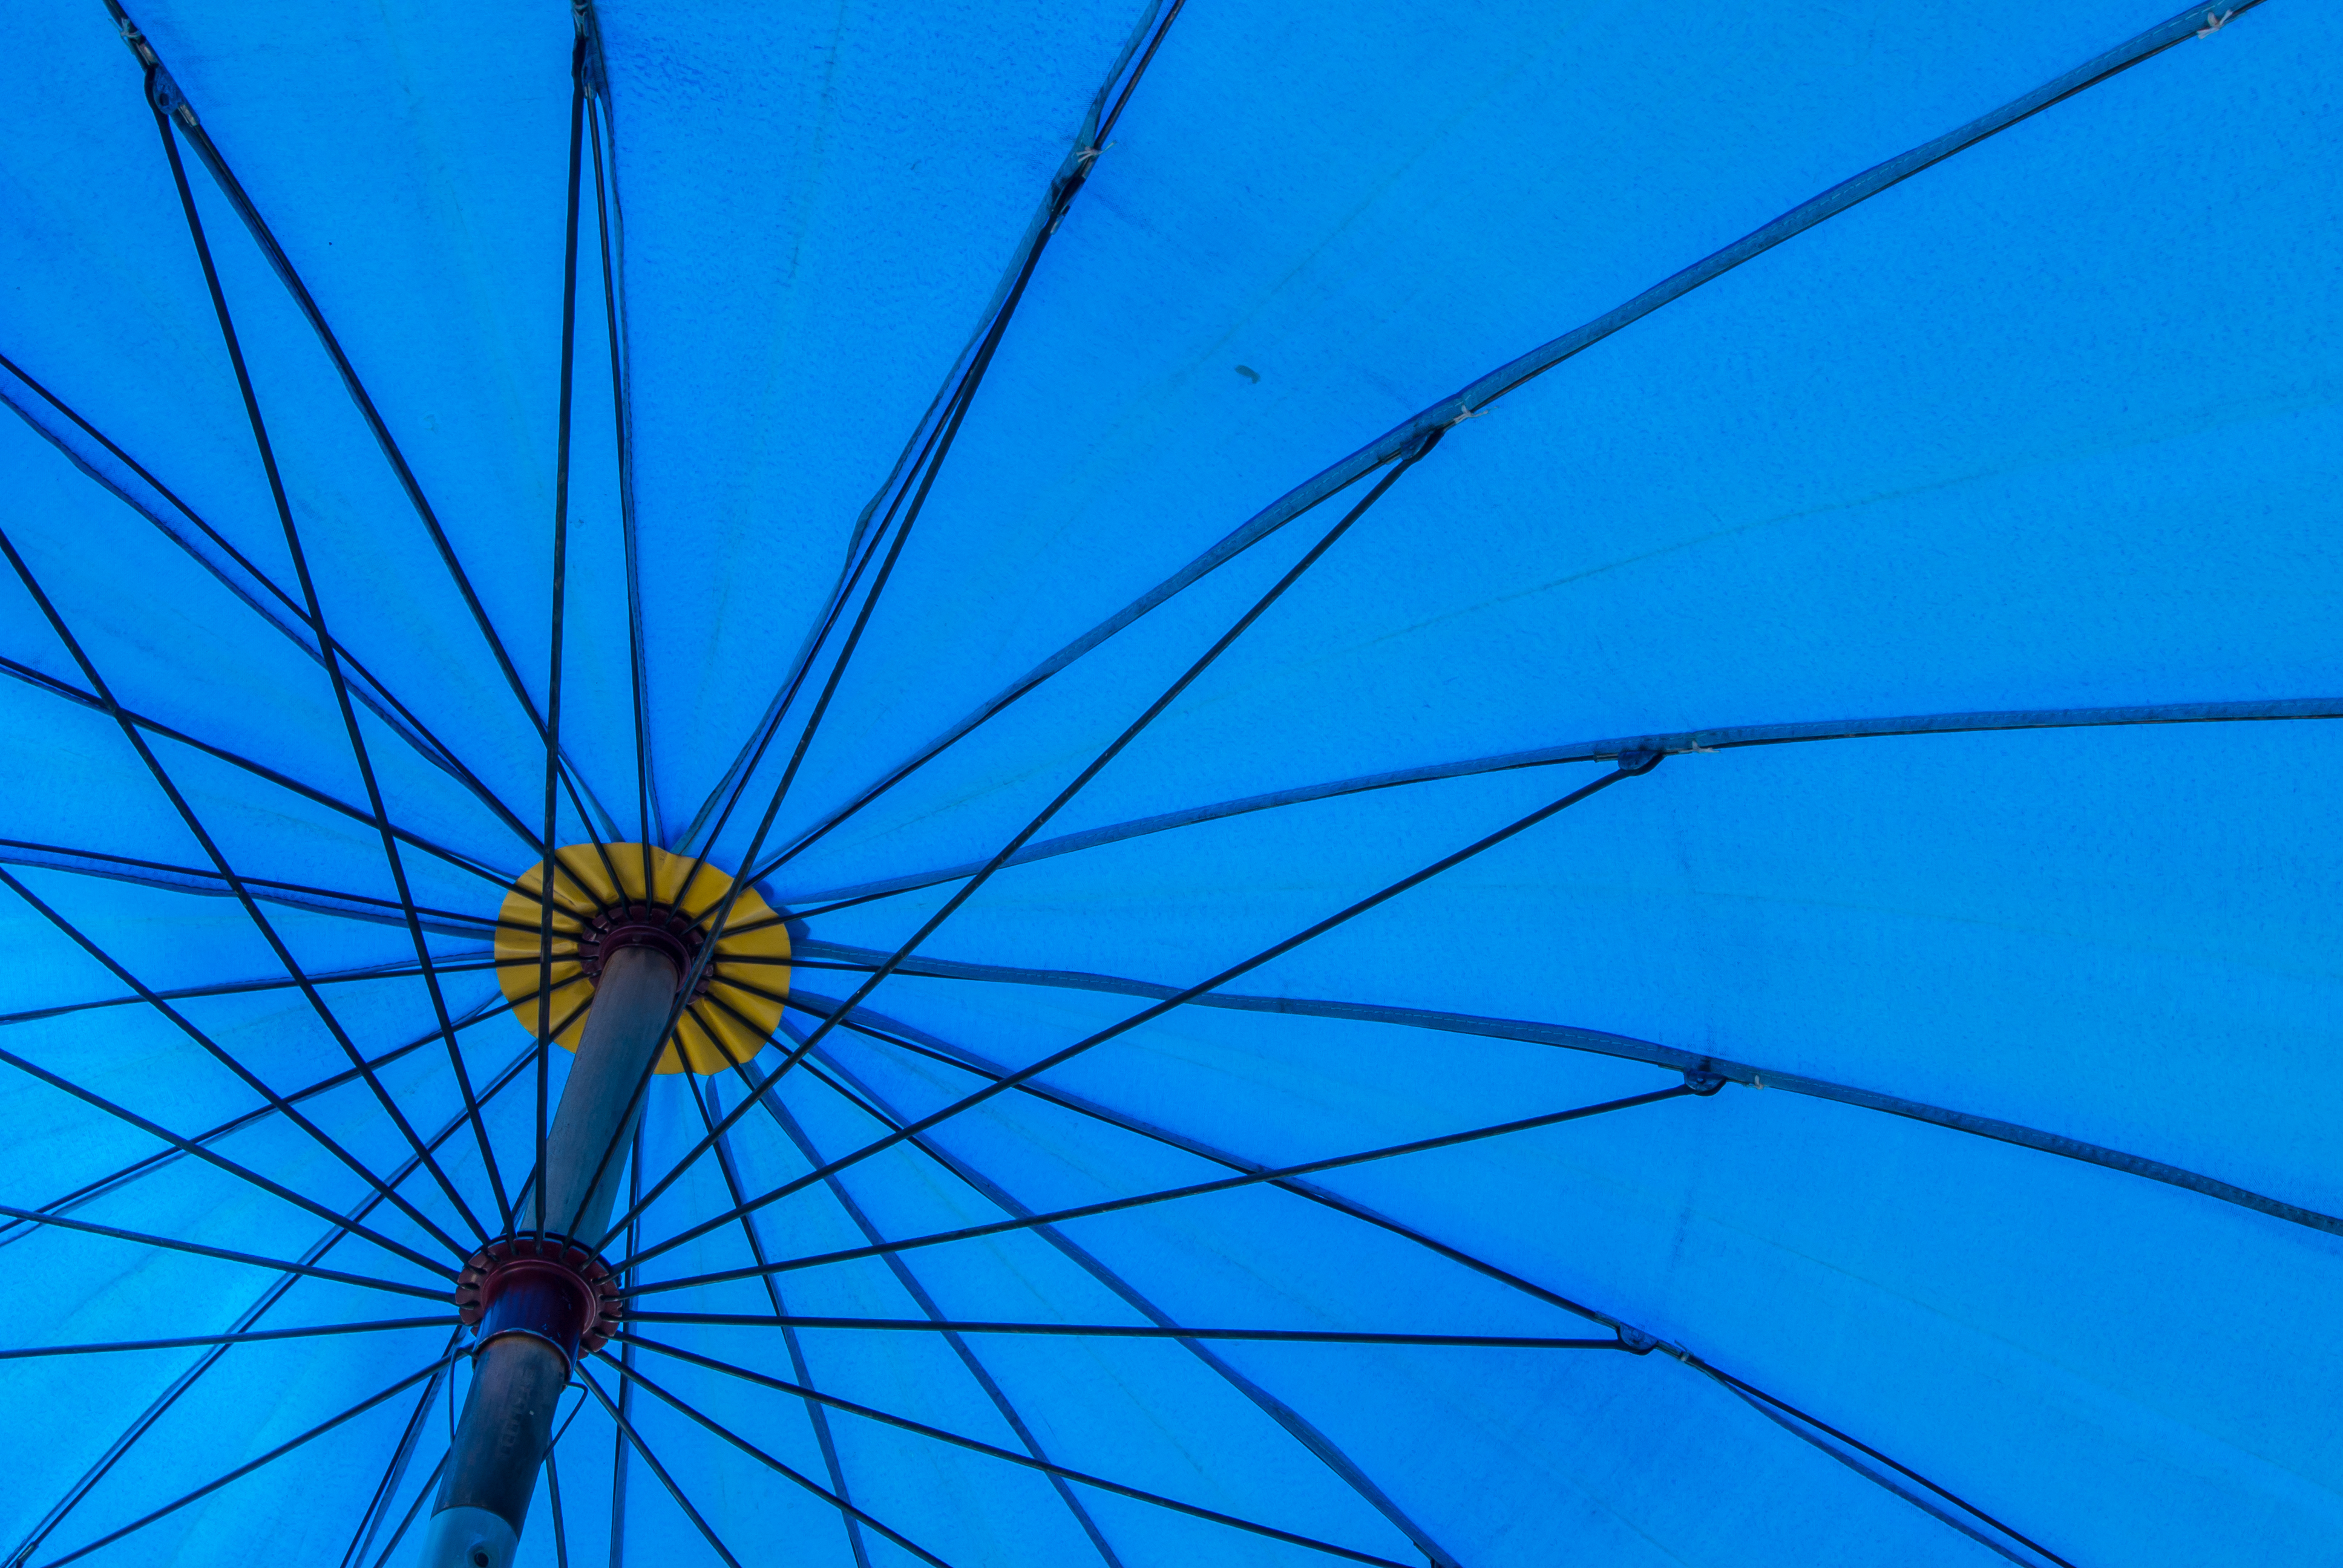 umbrella_frame_and_light